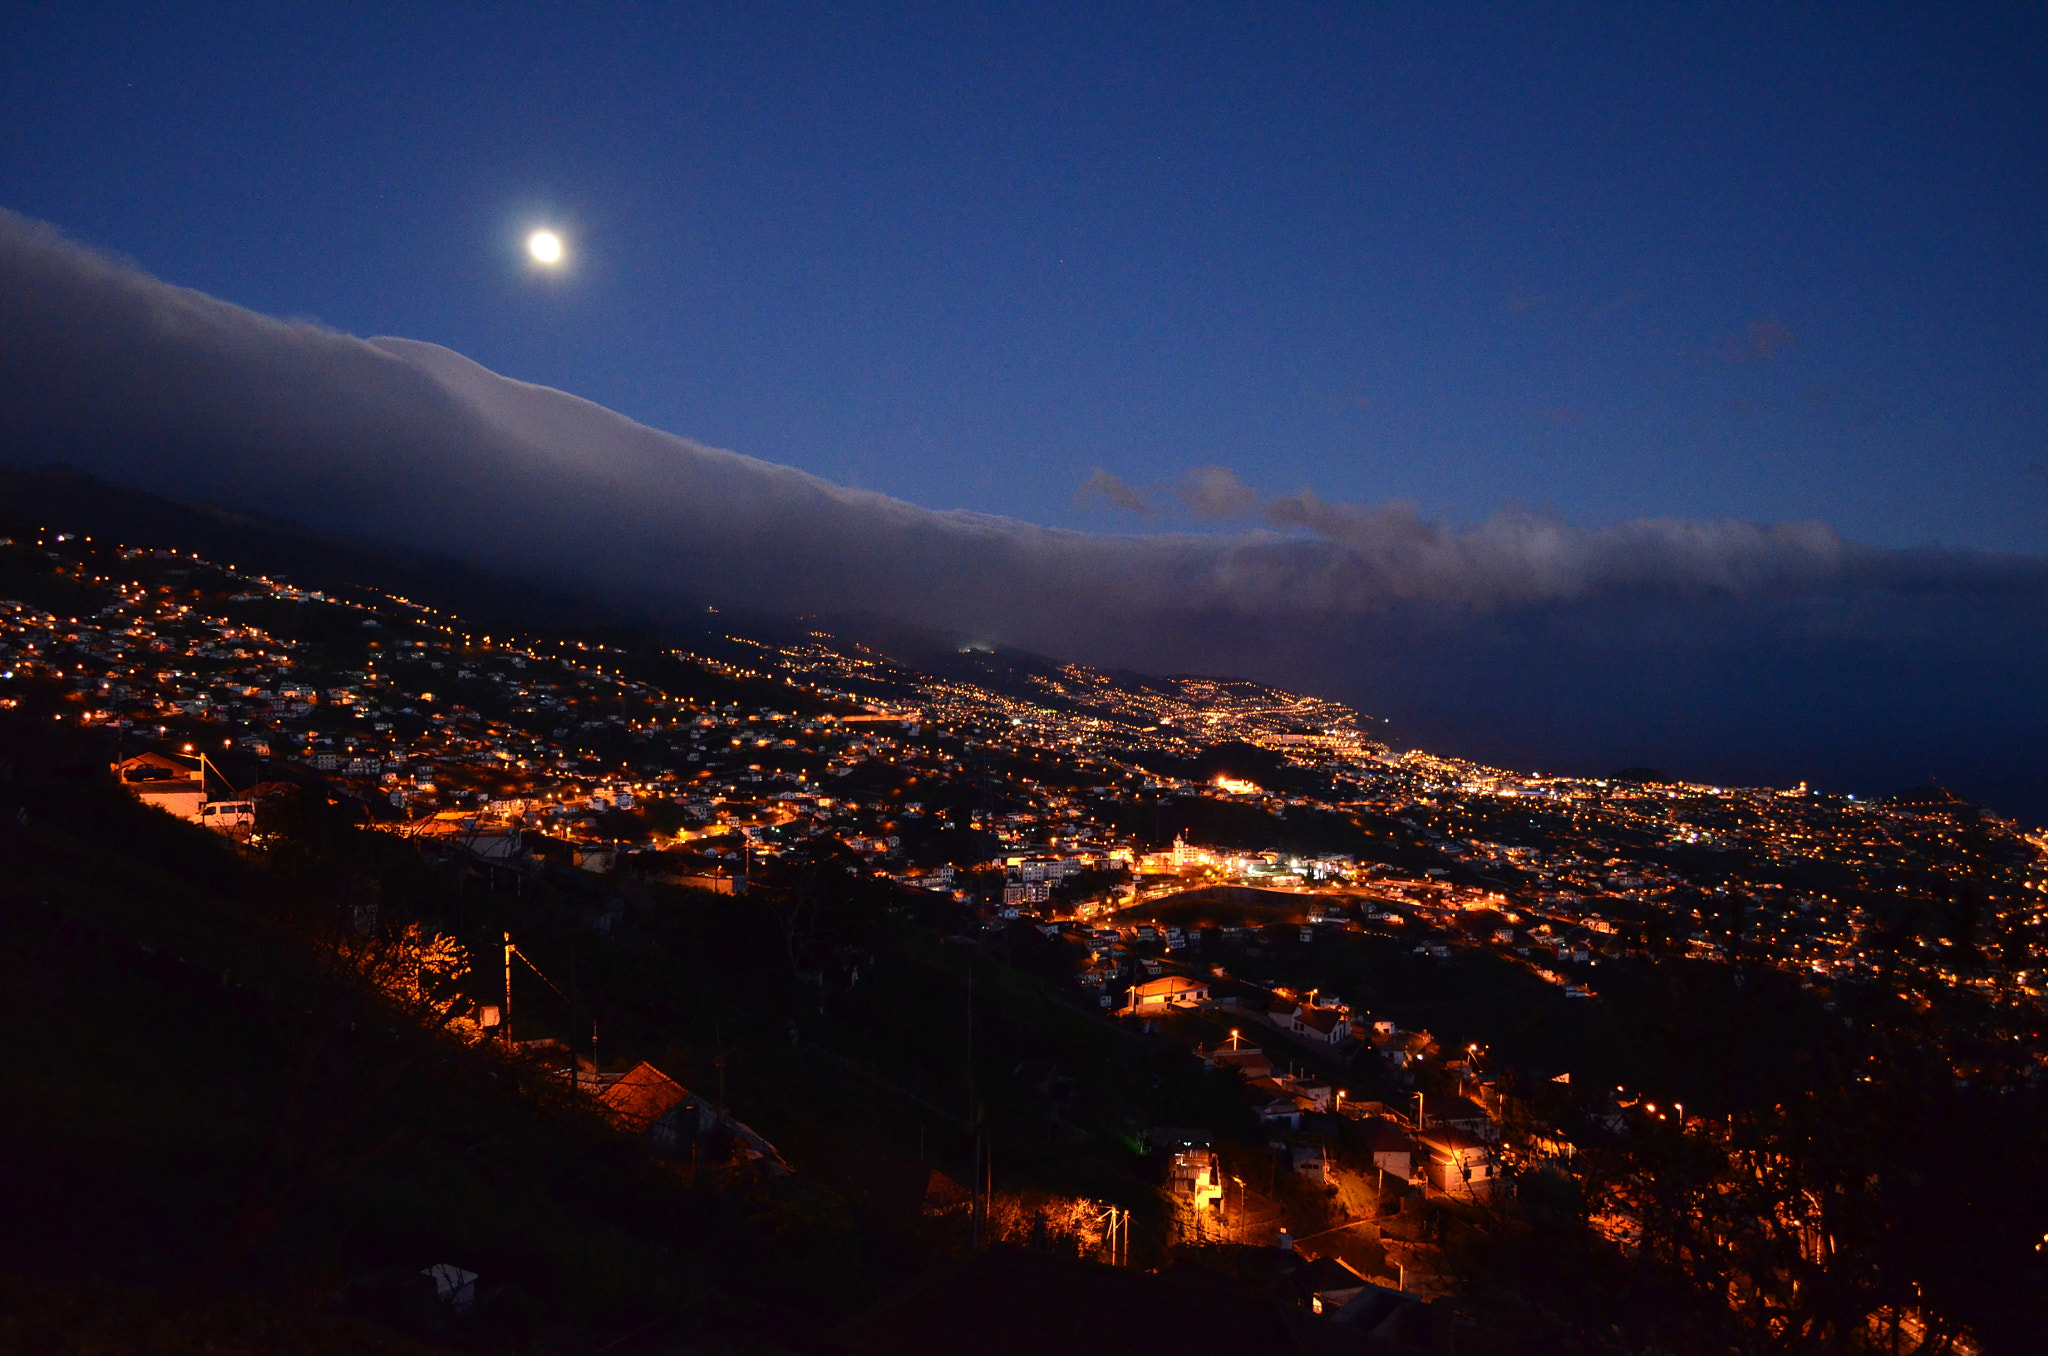 Photograph Funchal by Marcio Atouguia on 500px